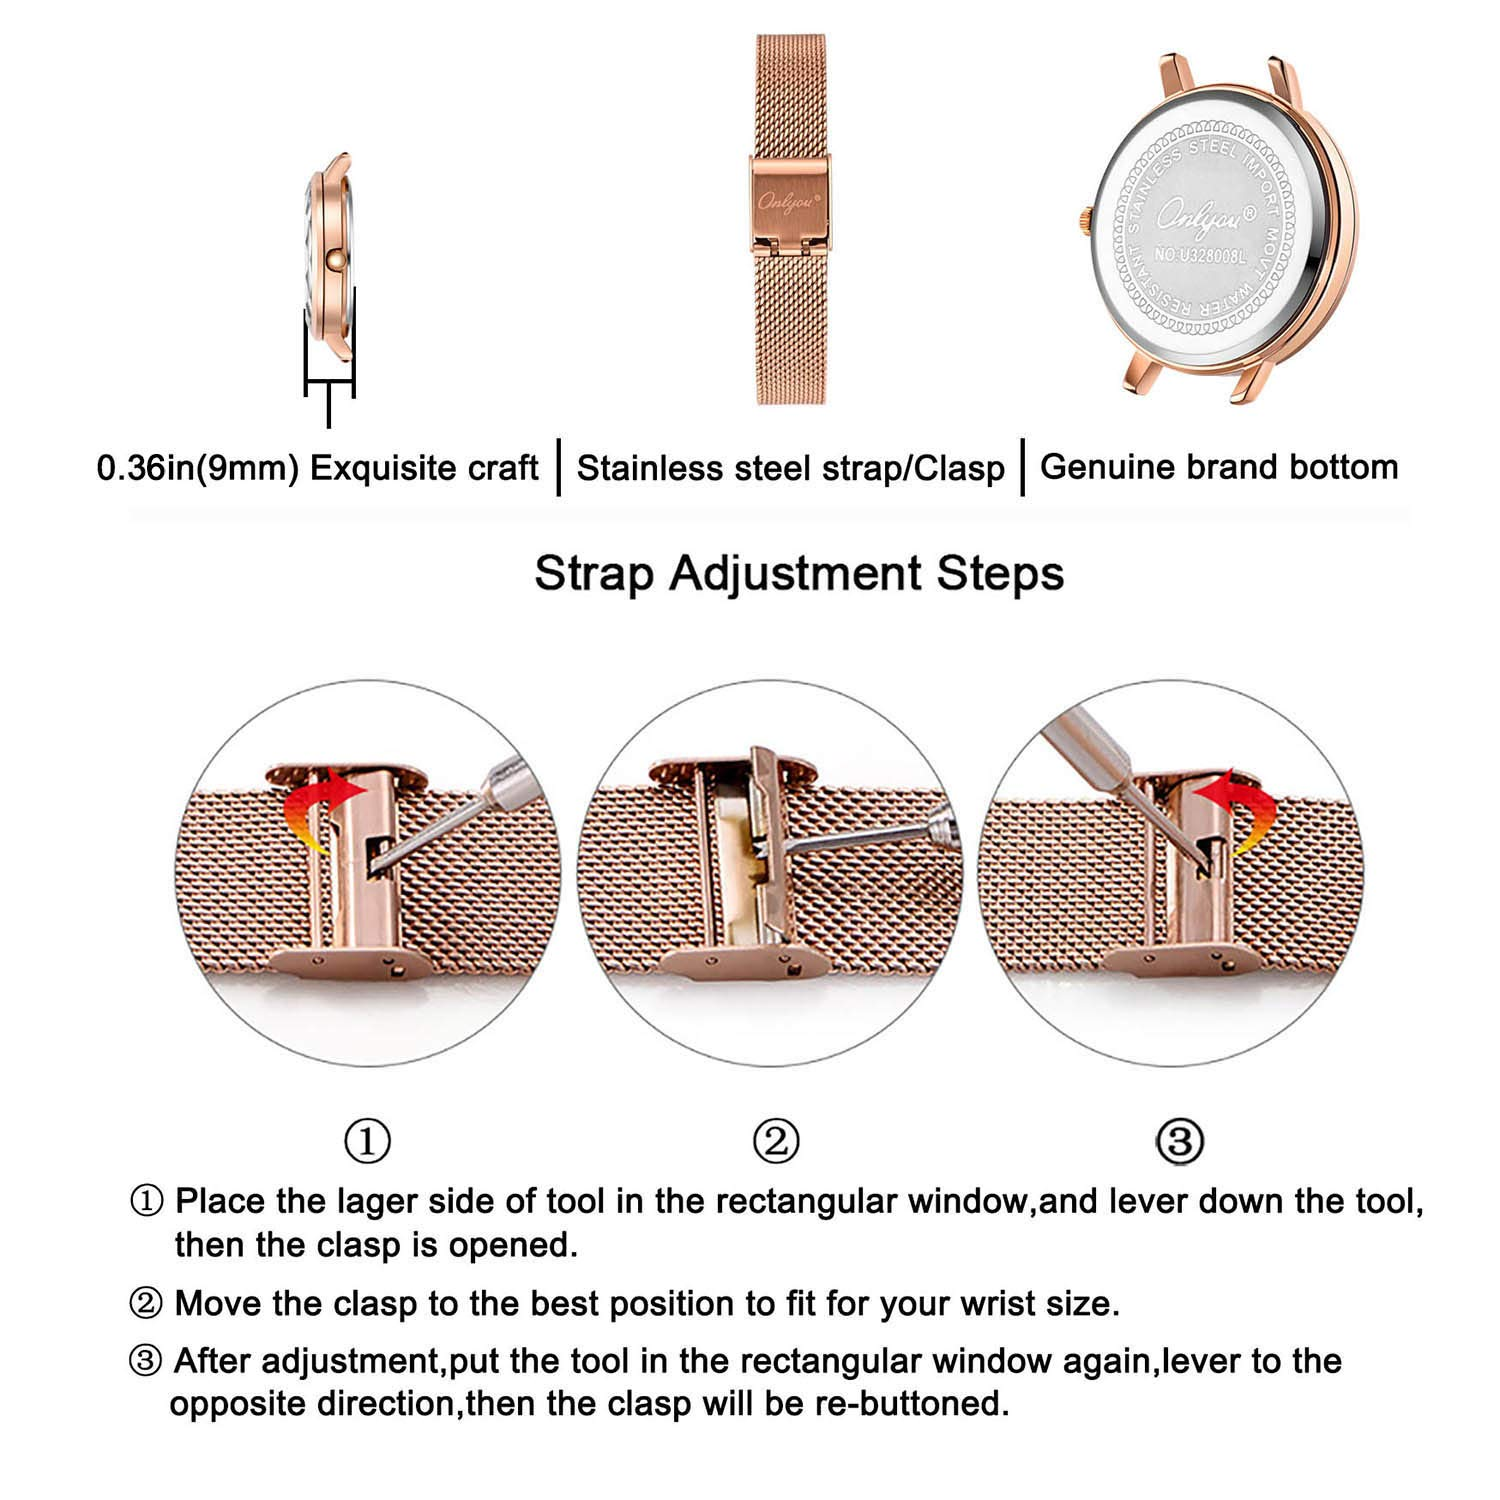 ONLYOU Women's Fashion Watches,Unique Face Design and 30M Waterproof,Analog Quartz Wristwatches with Stainless Steel Mesh Band (Blue) by onlyou (Image #5)